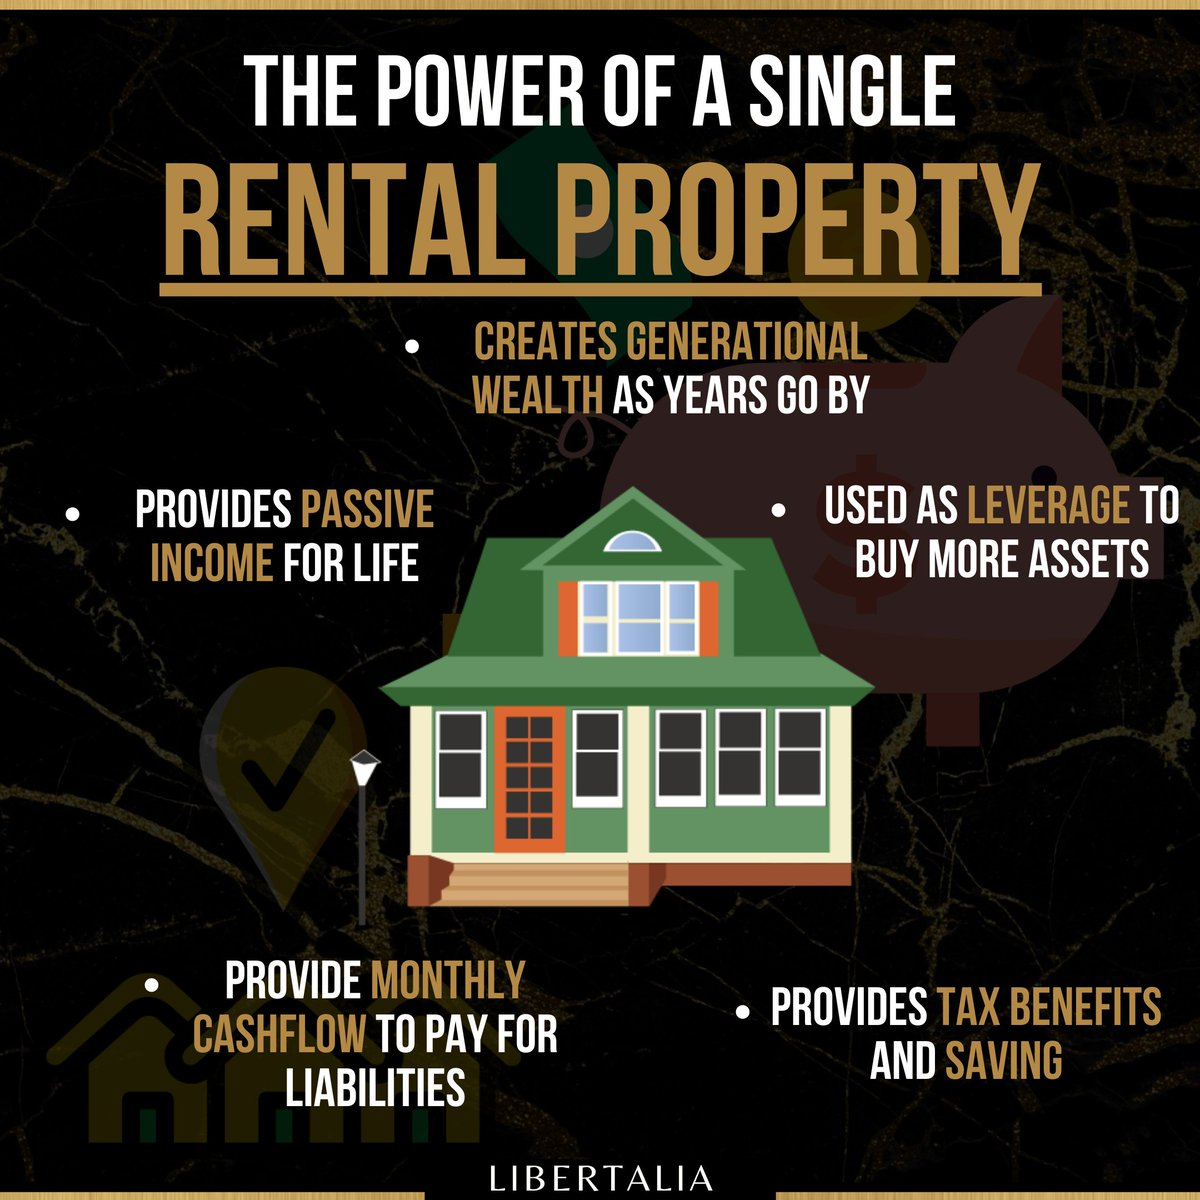 Property is a powerful tool. - #realestate #successquotes #realestatetips #realestatestyle #property #realestateknowledge #inspirationalquotes #realtor #investing #investors #investment #success #realestateagent #properties #propertyvalue #realestatetips #realestateknowledgepic.twitter.com/g6Qli1AgSb